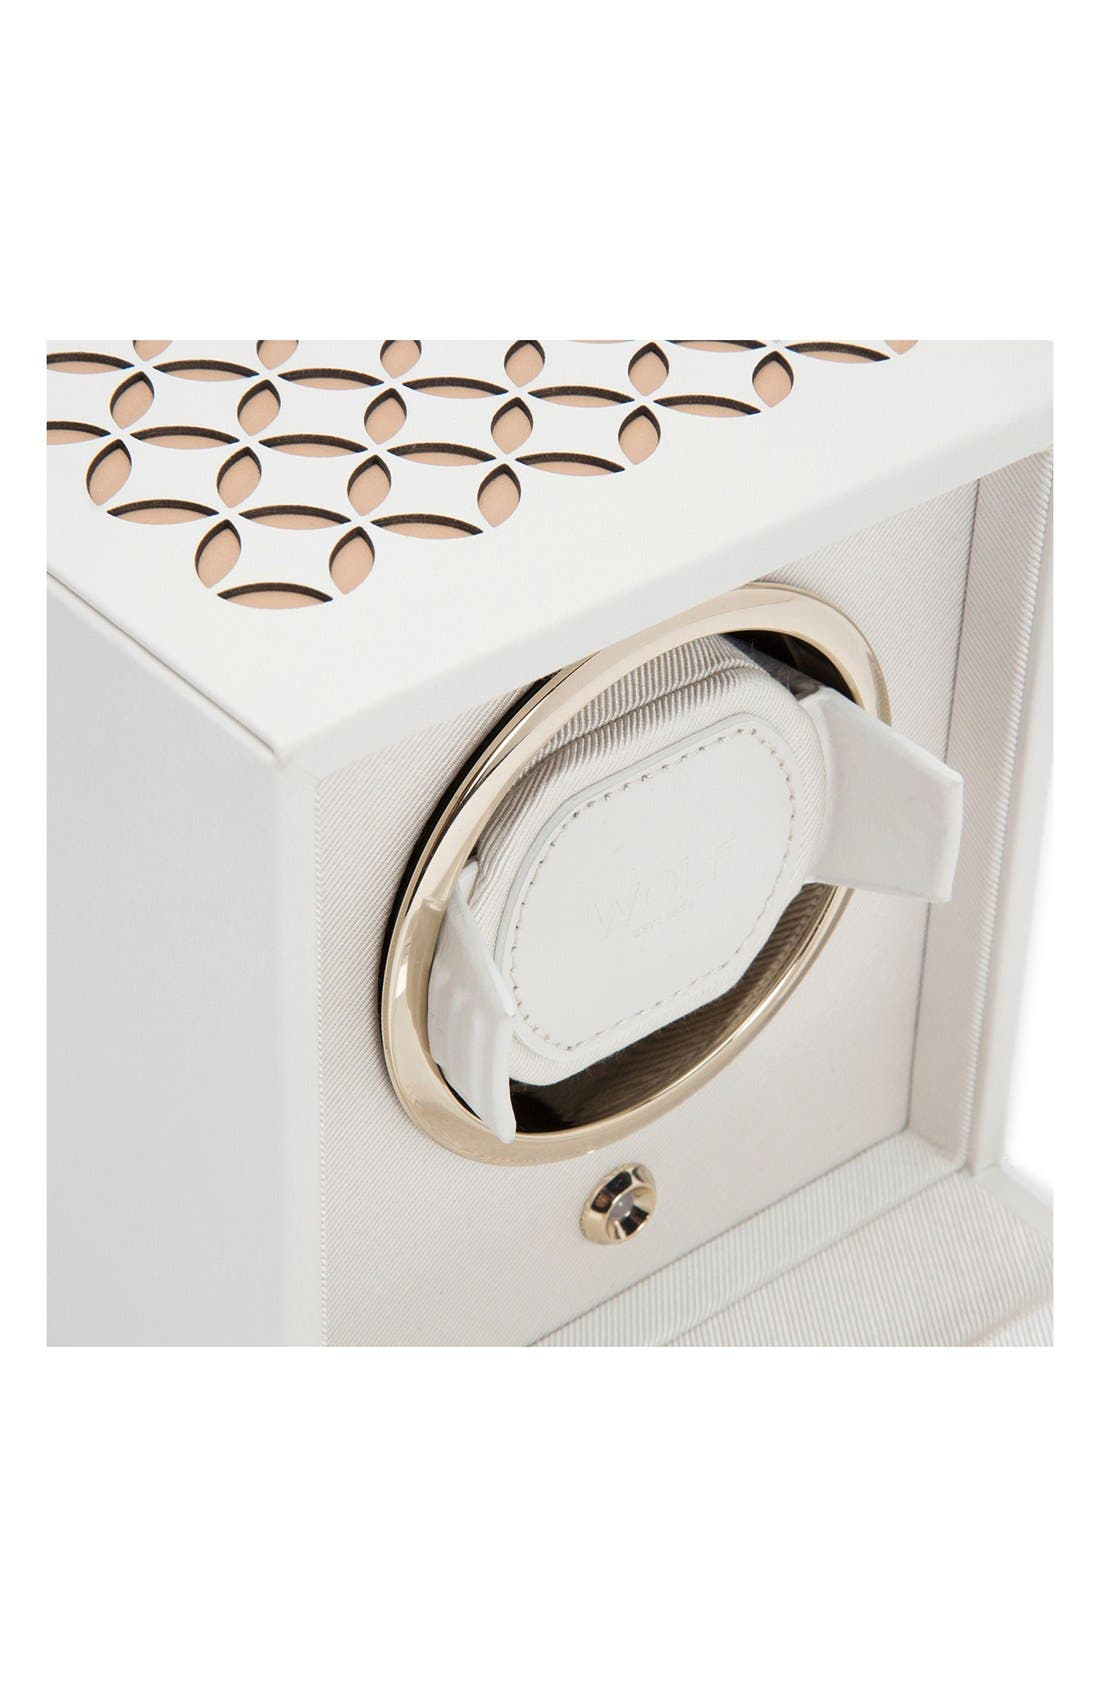 Watch Winder,                             Alternate thumbnail 4, color,                             CREAM